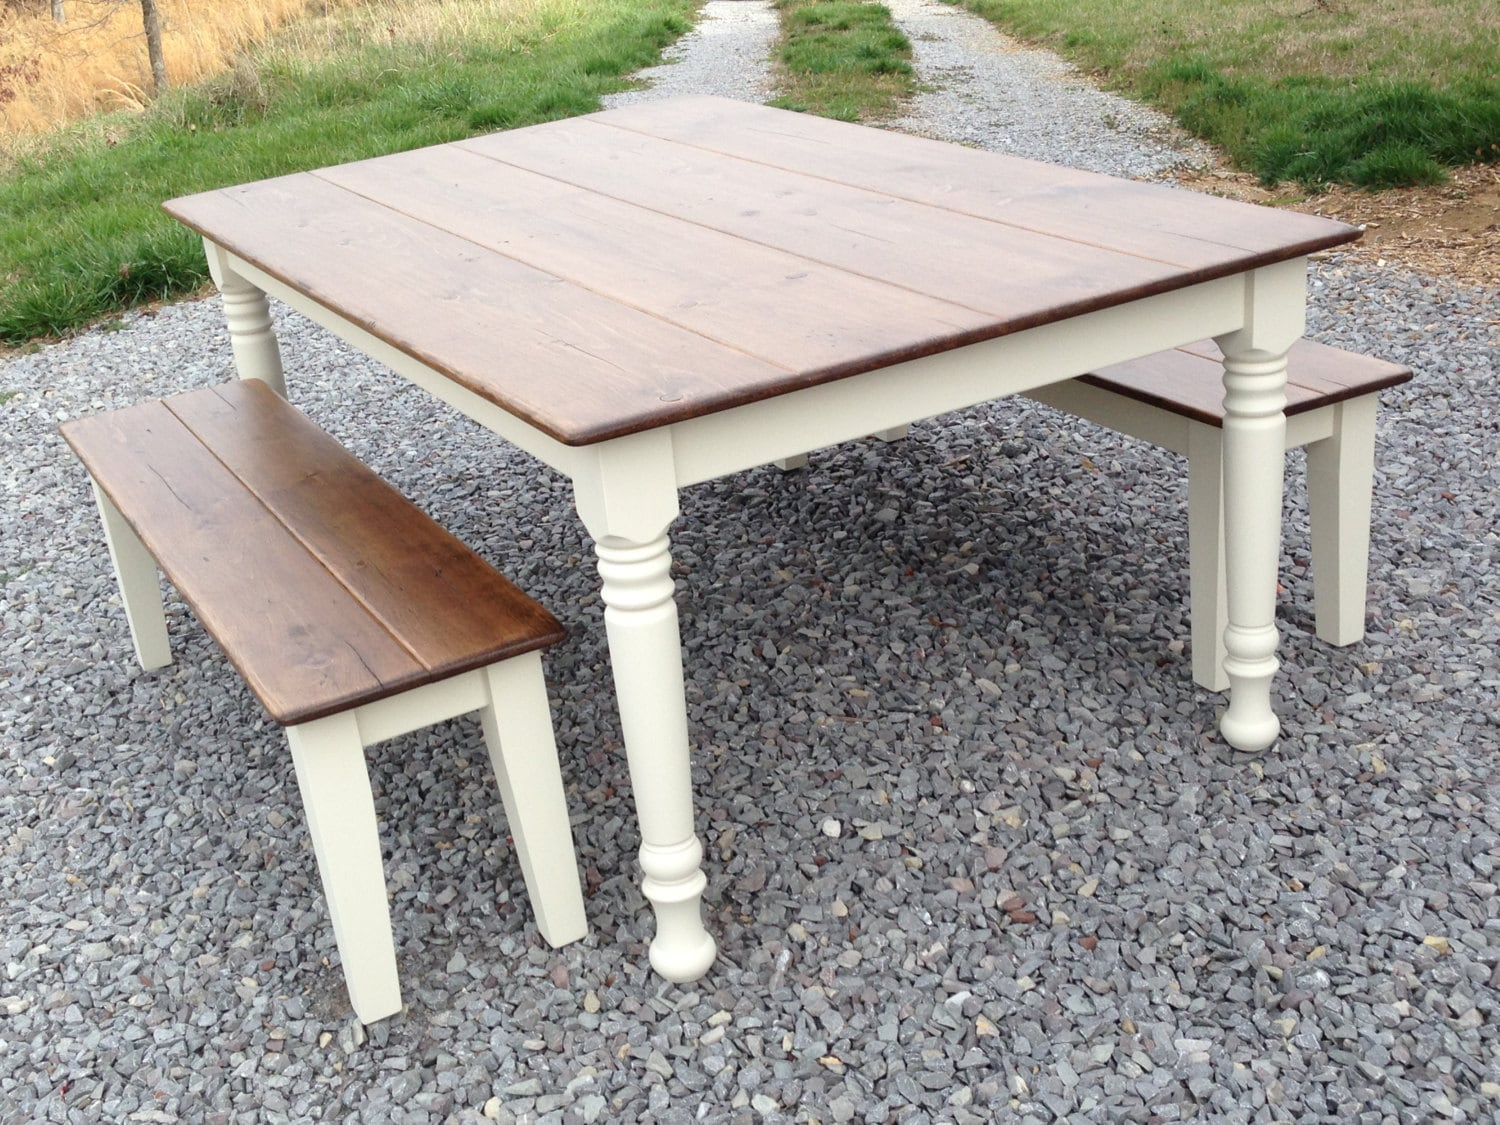 Popular items for farmhouse table on Etsy